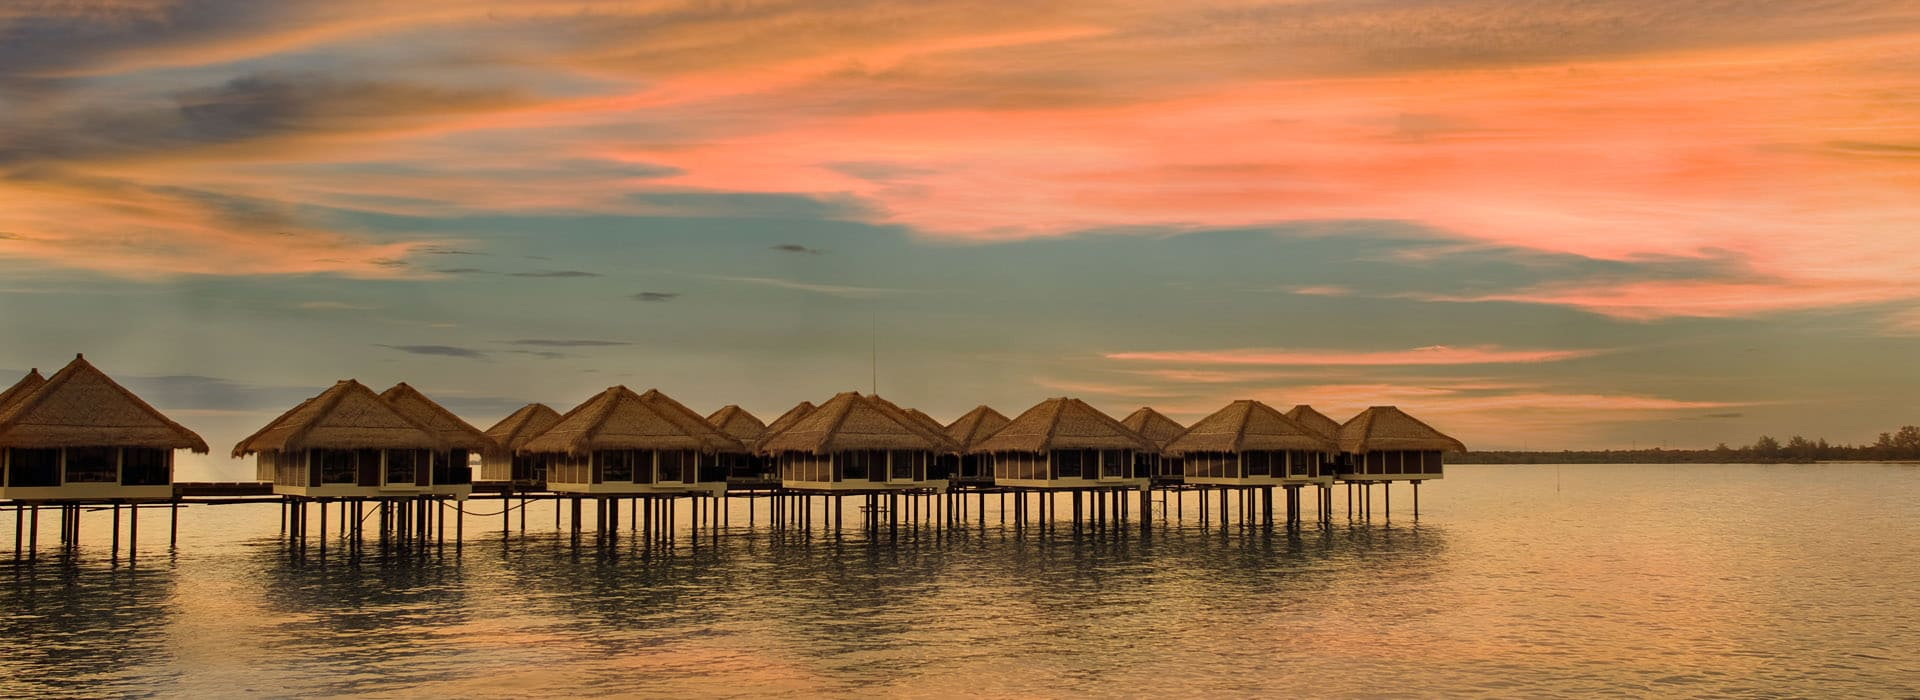 AVANI Sepang Over water villas at Sun set